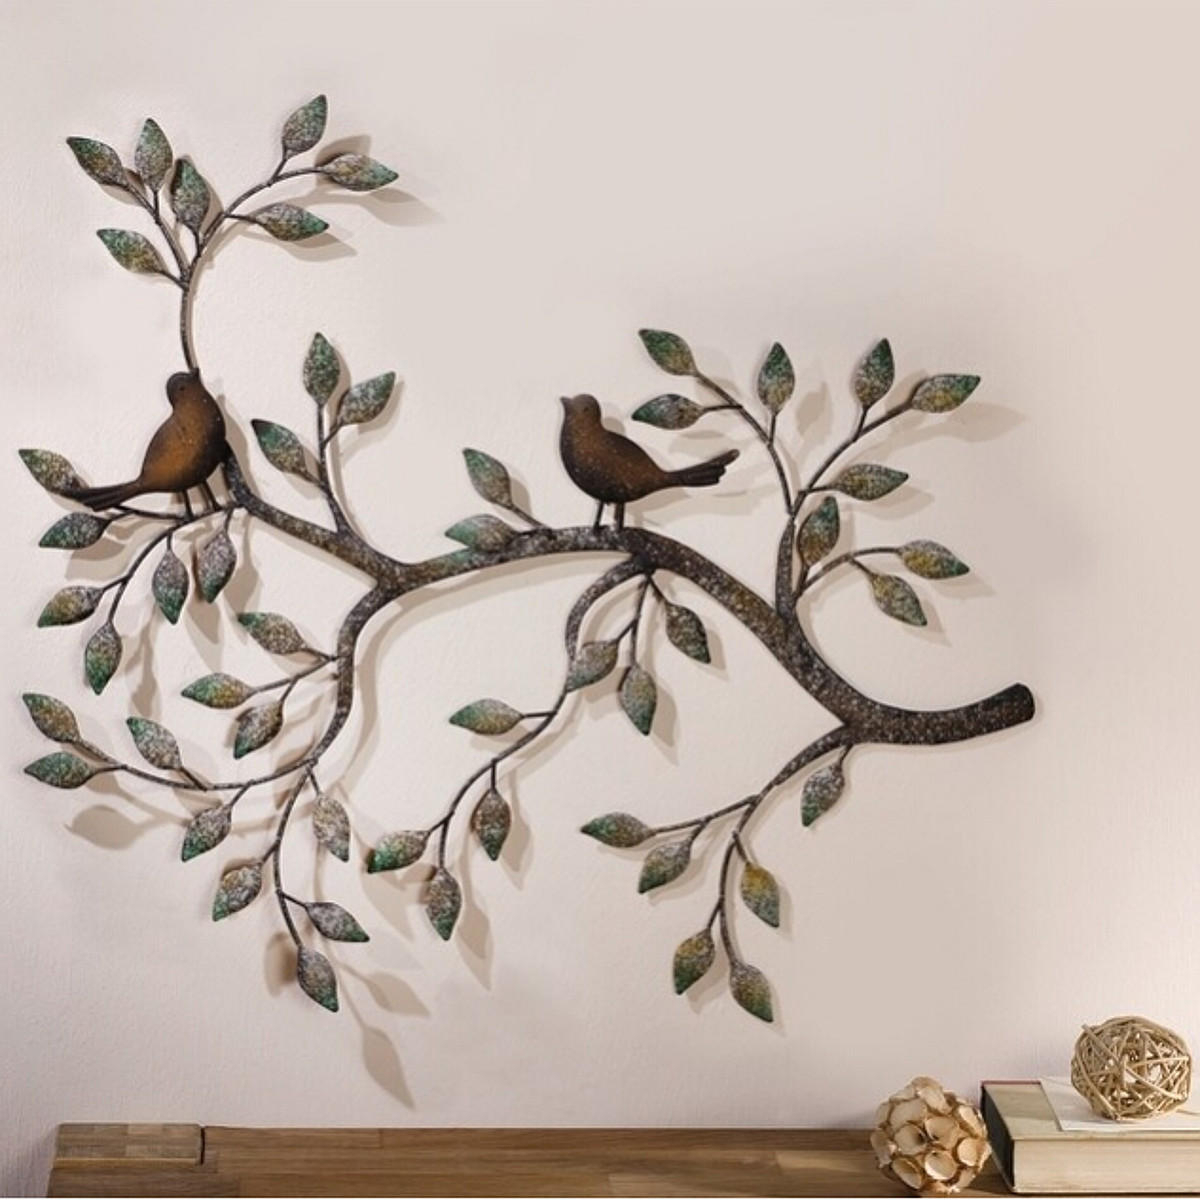 Tree Of Life Leaves Bird Wall Hanging Ornament Metal Wall Art Sculpture Home Room Decorations Inside Leaves Metal Sculpture Wall Decor (View 6 of 30)